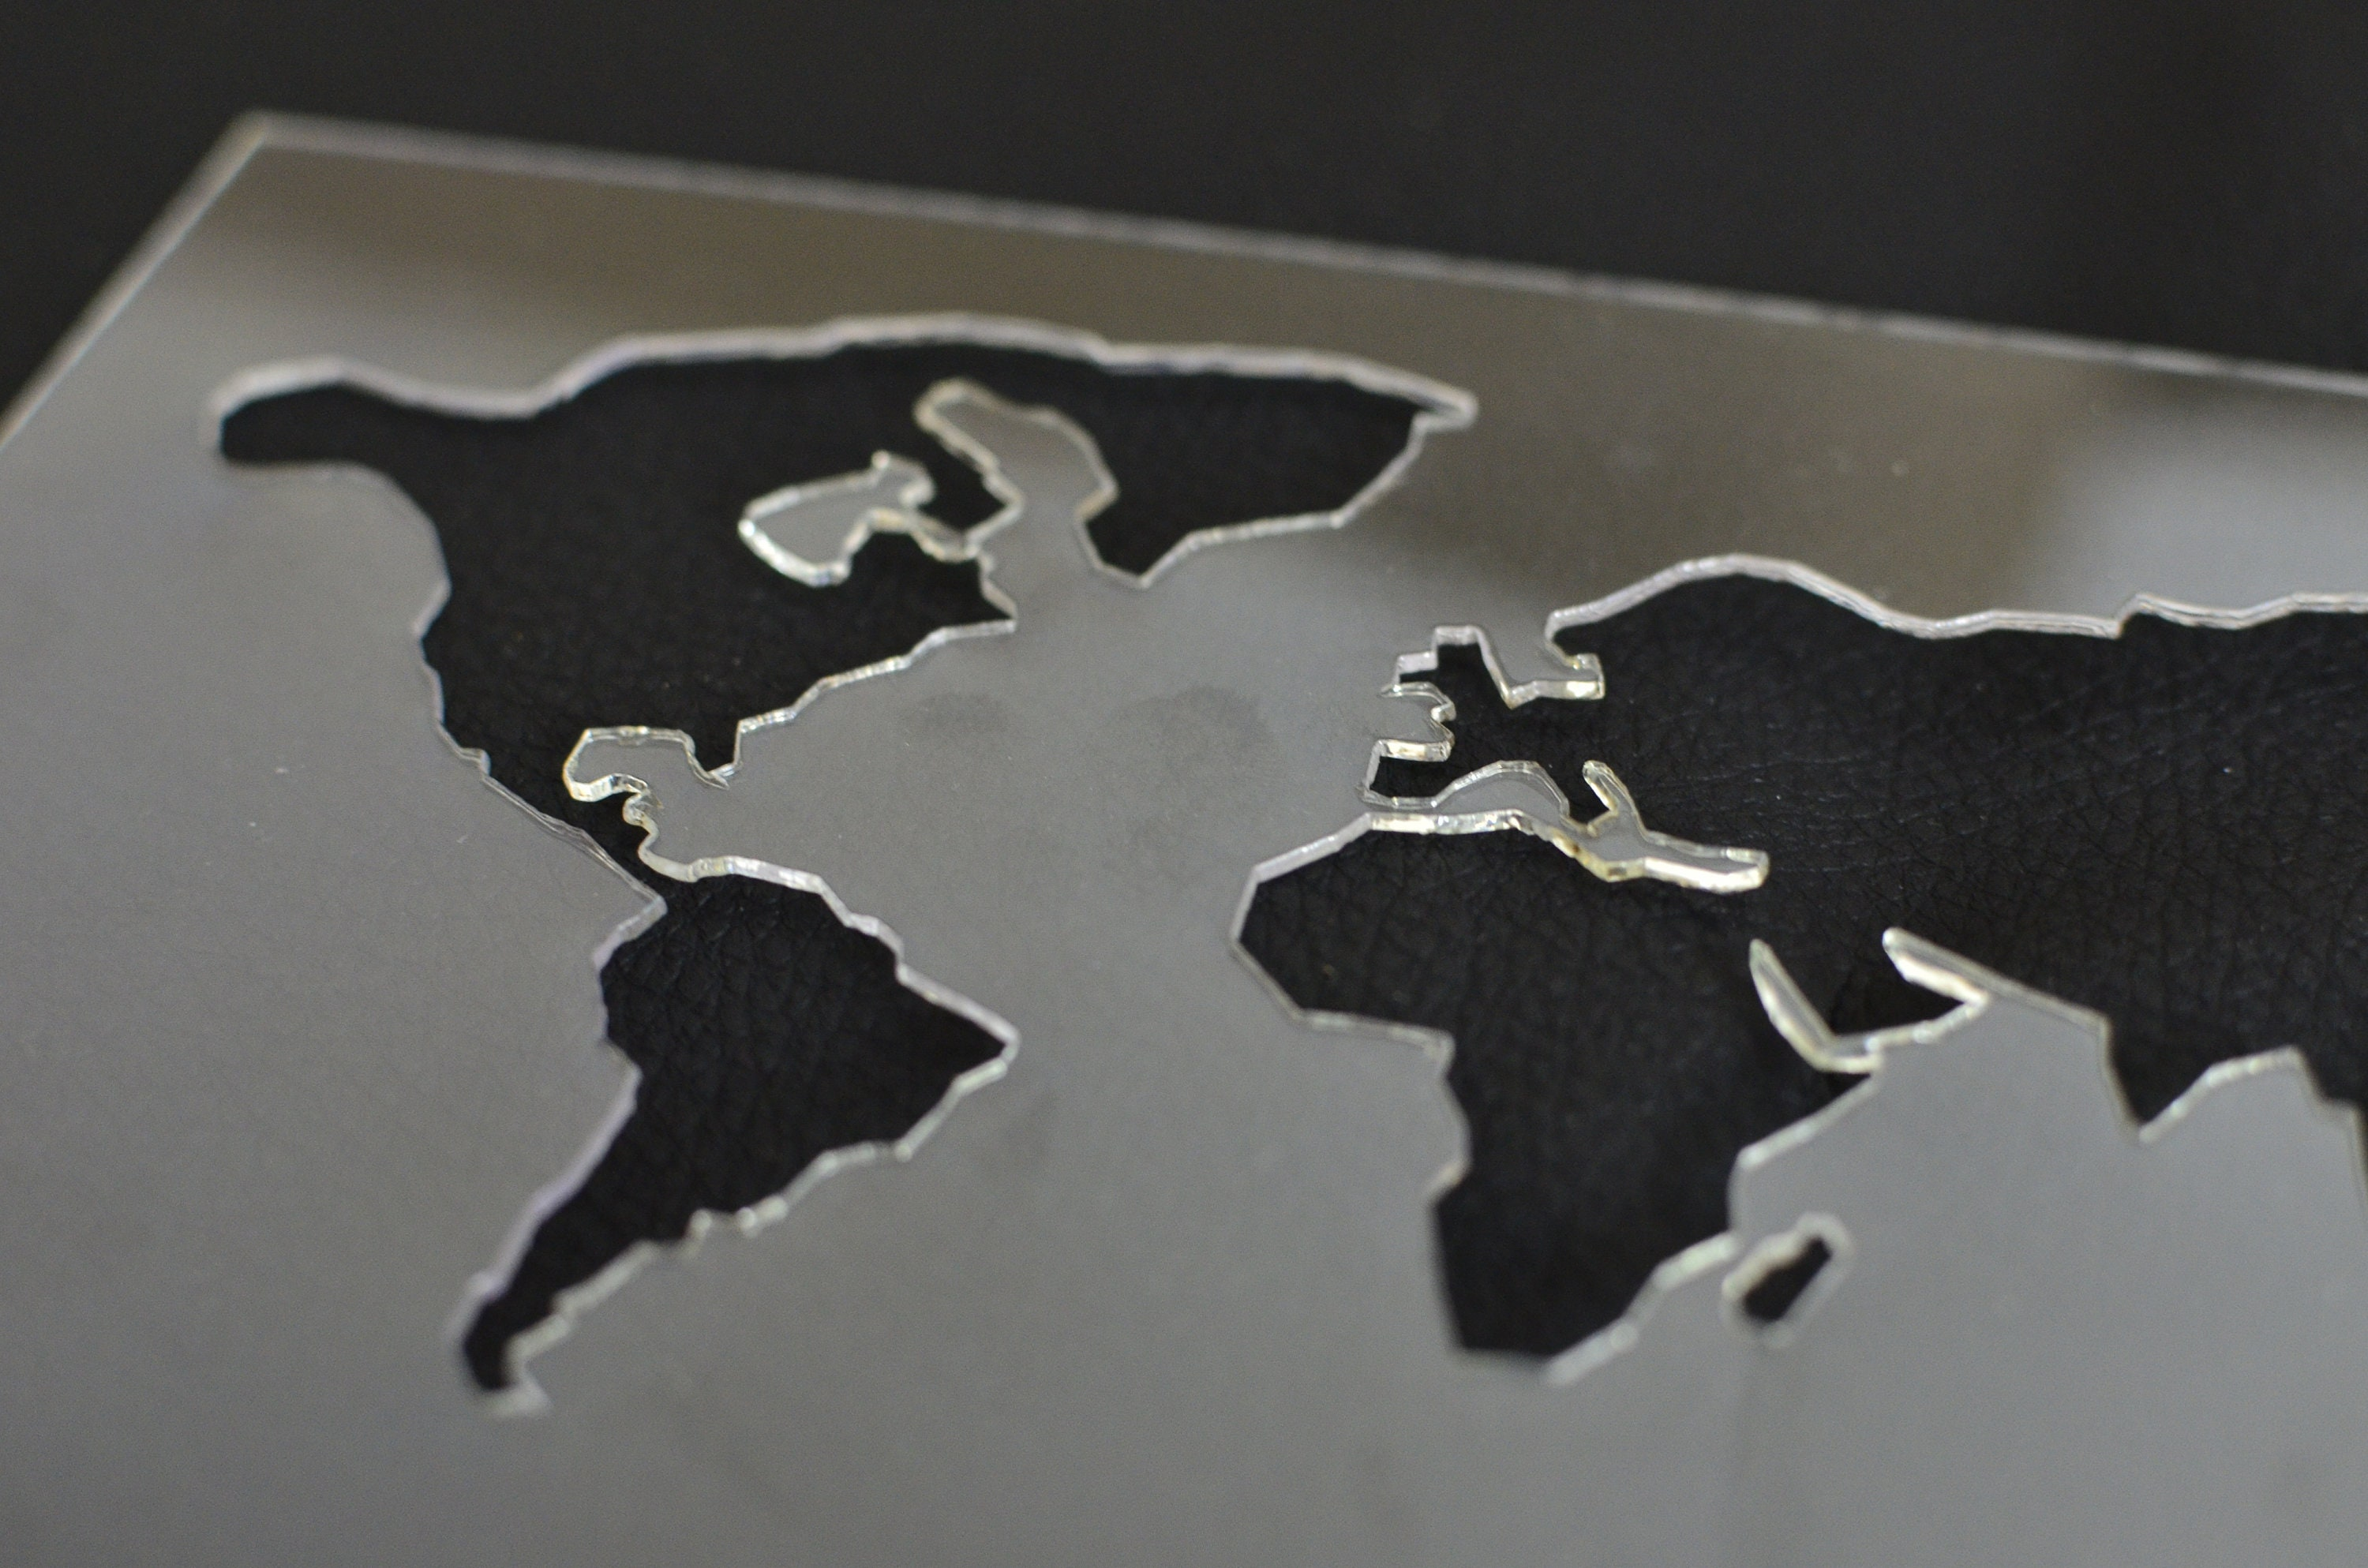 World map stencil for crafts World map small stencil for hand | Etsy